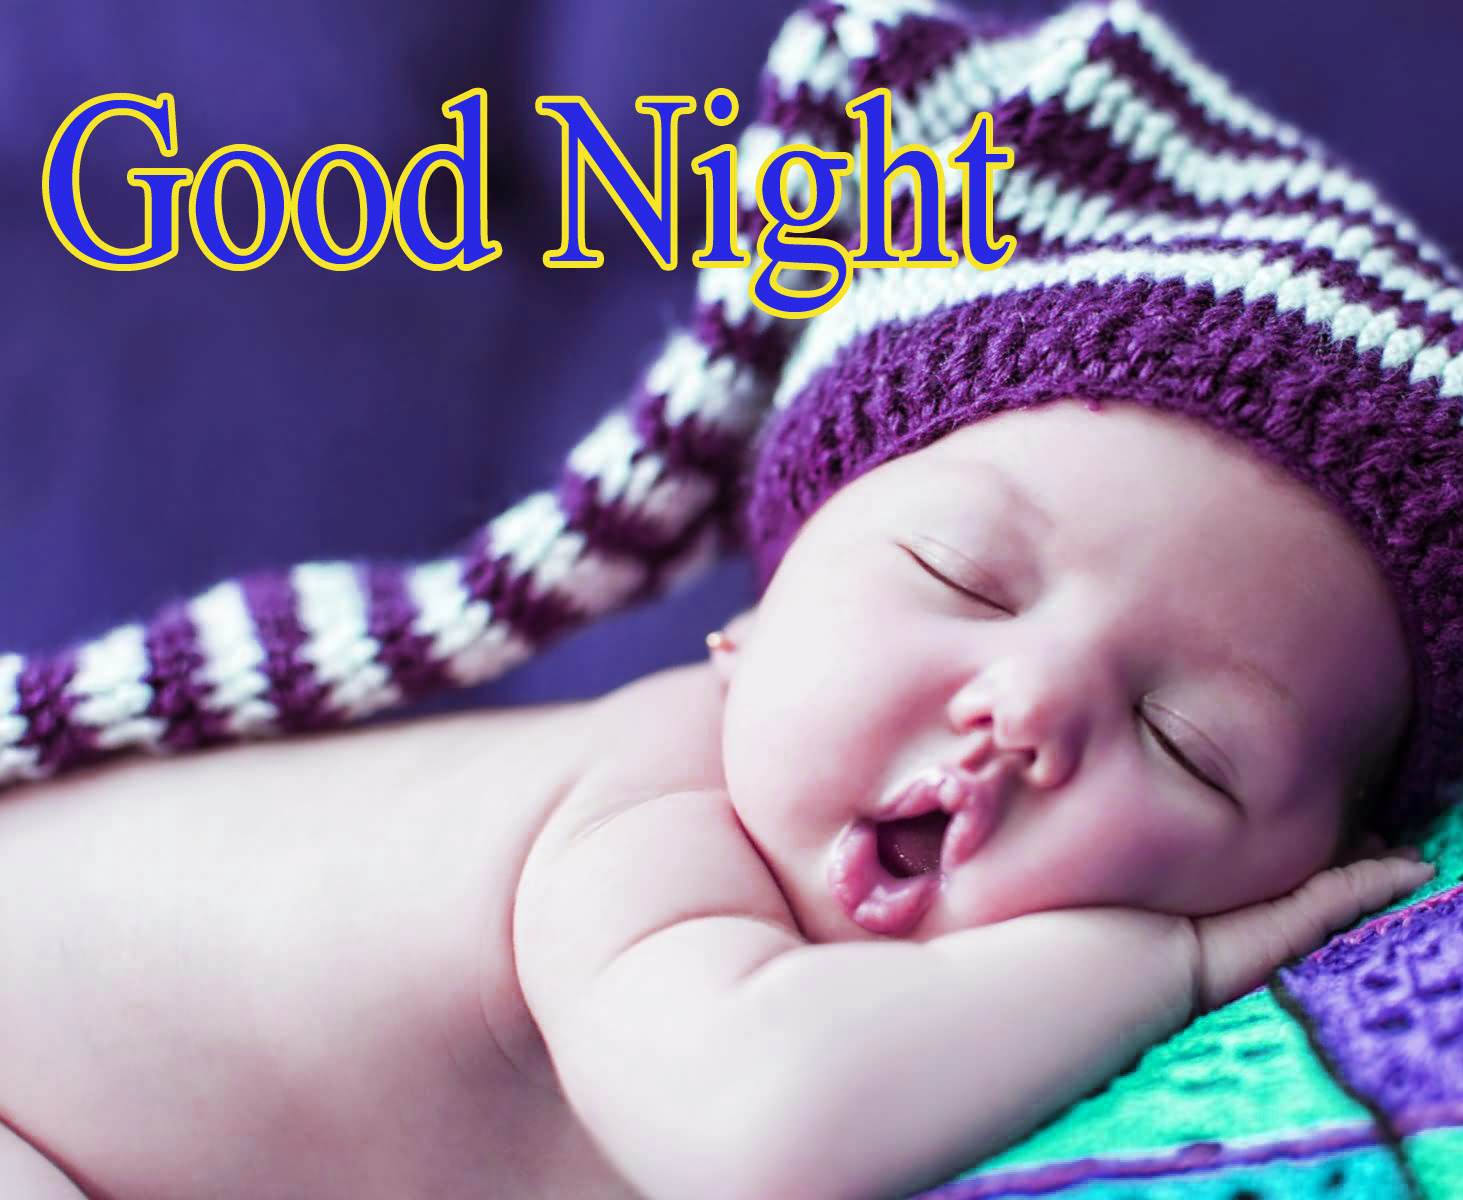 Good Night Images With Cute Baby Girl Hd Baby Viewer